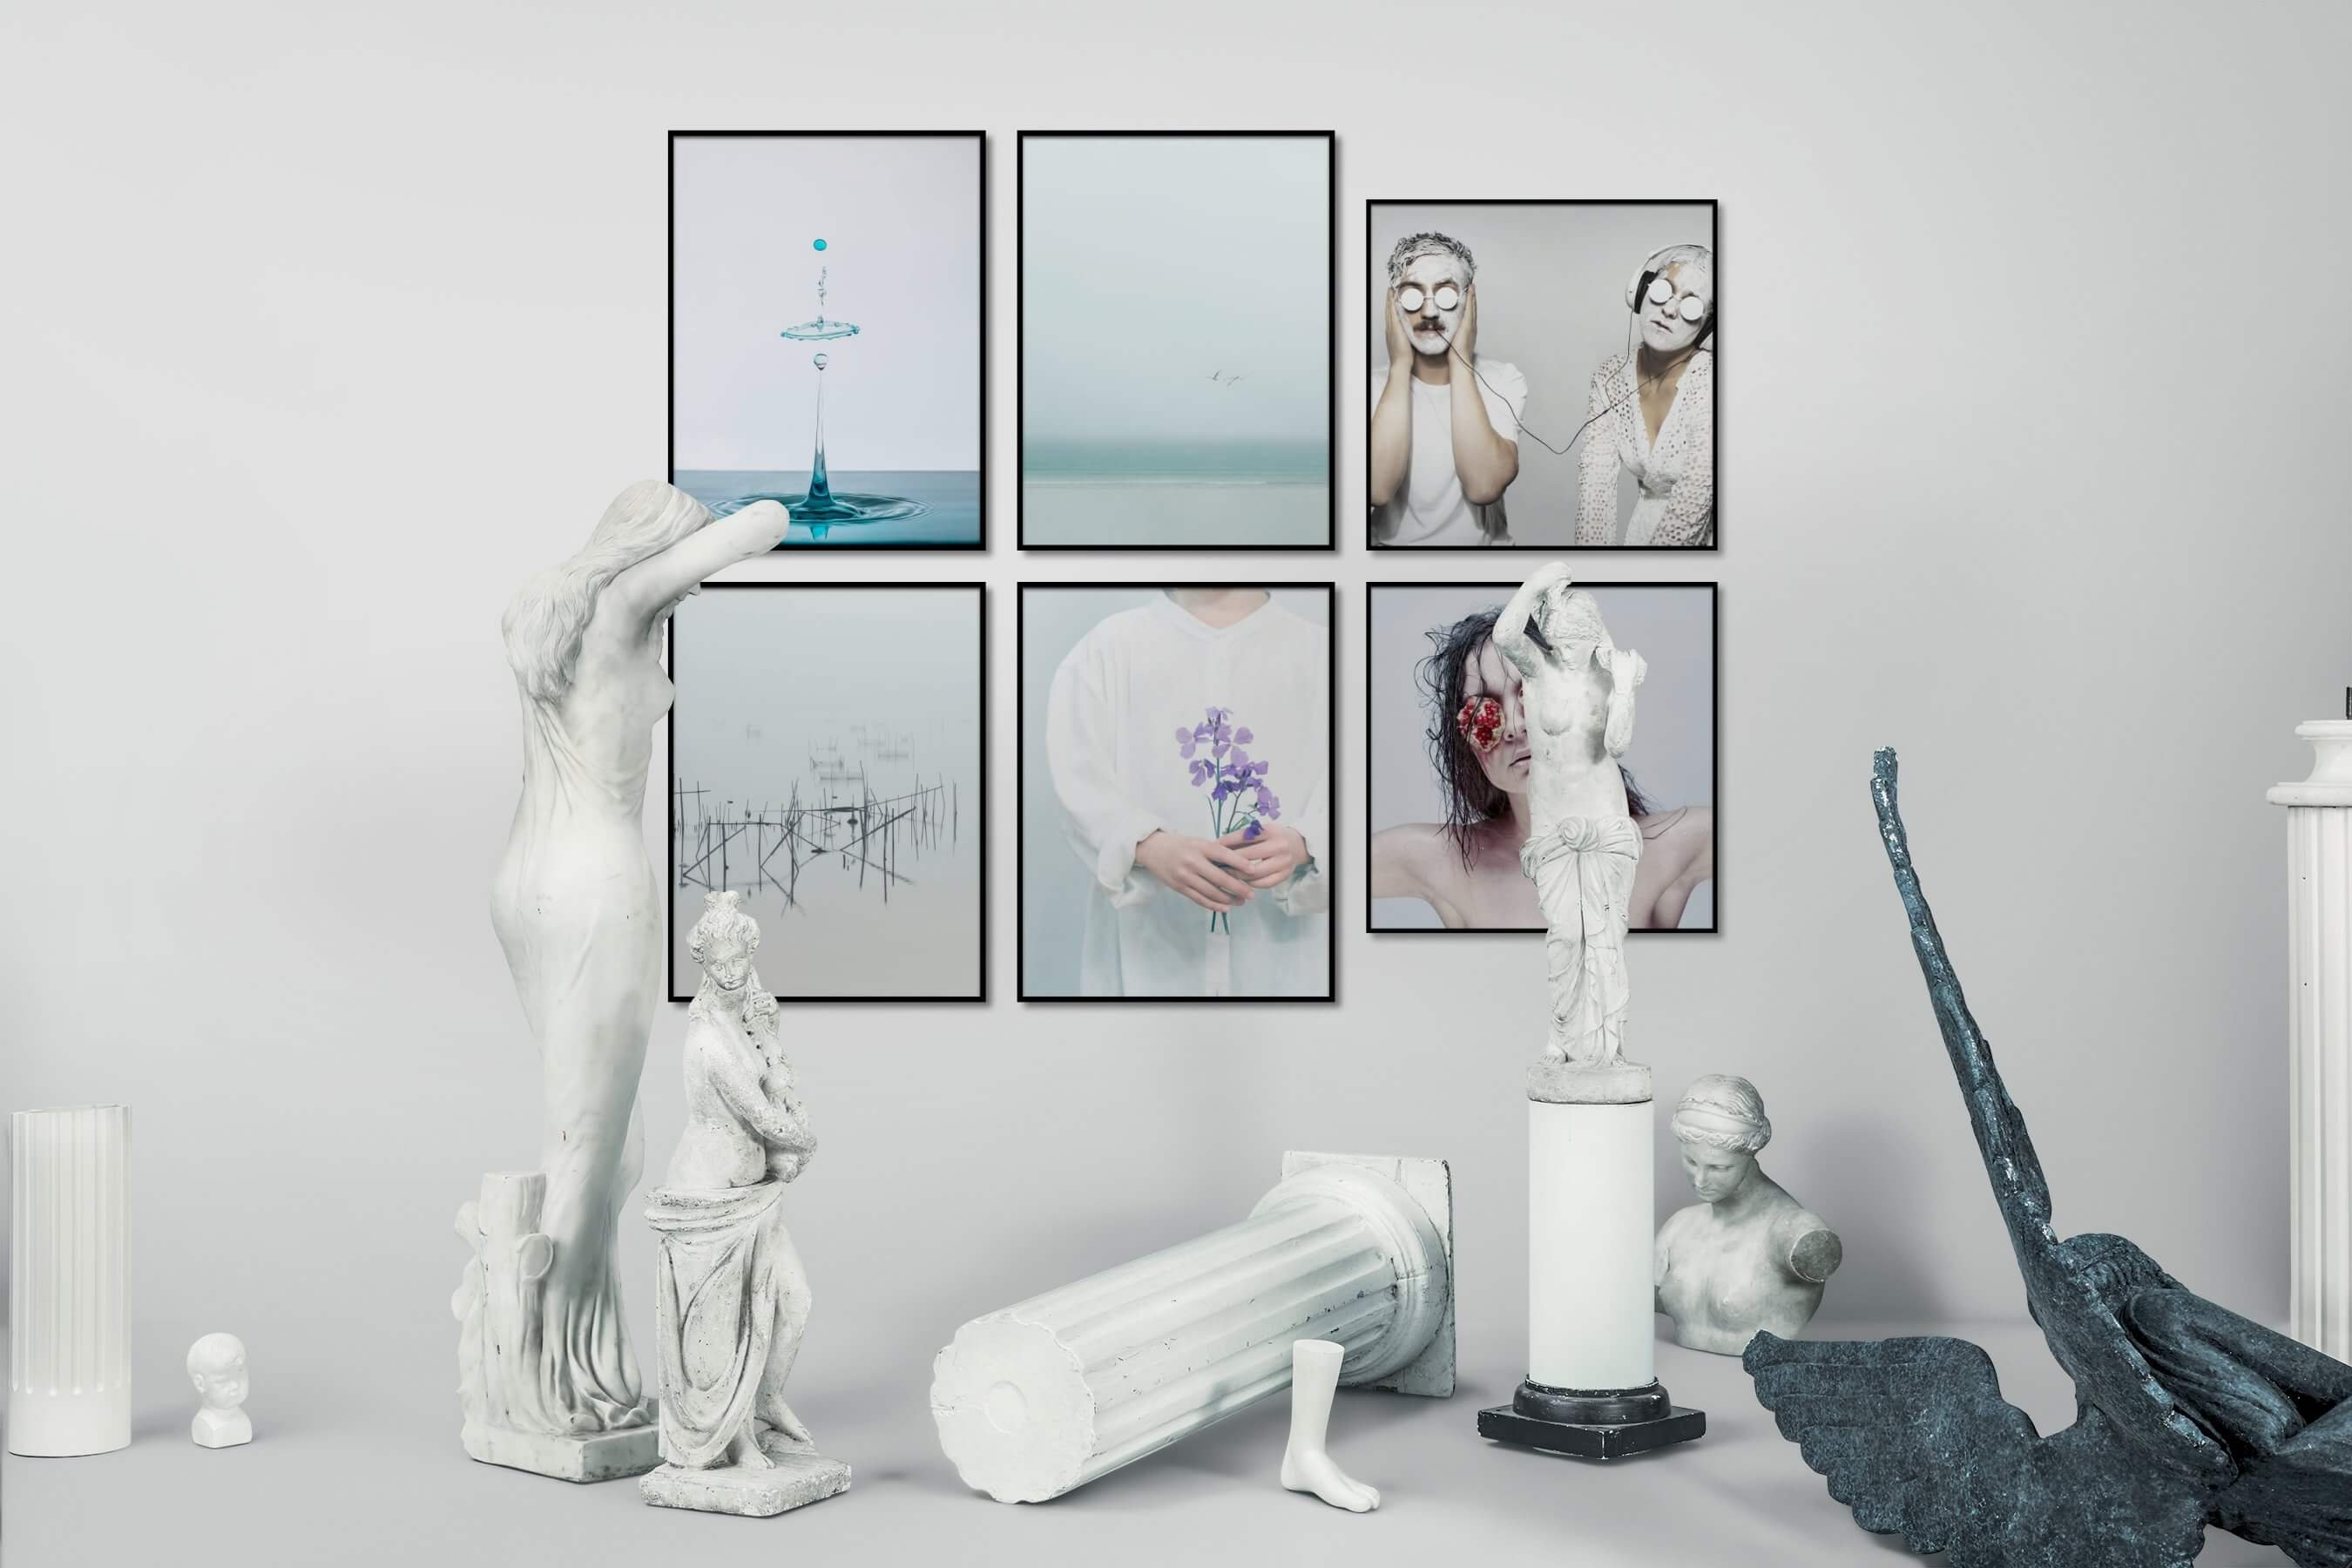 Gallery wall idea with six framed pictures arranged on a wall depicting Bright Tones, For the Minimalist, Mindfulness, Beach & Water, For the Moderate, Artsy, and Flowers & Plants